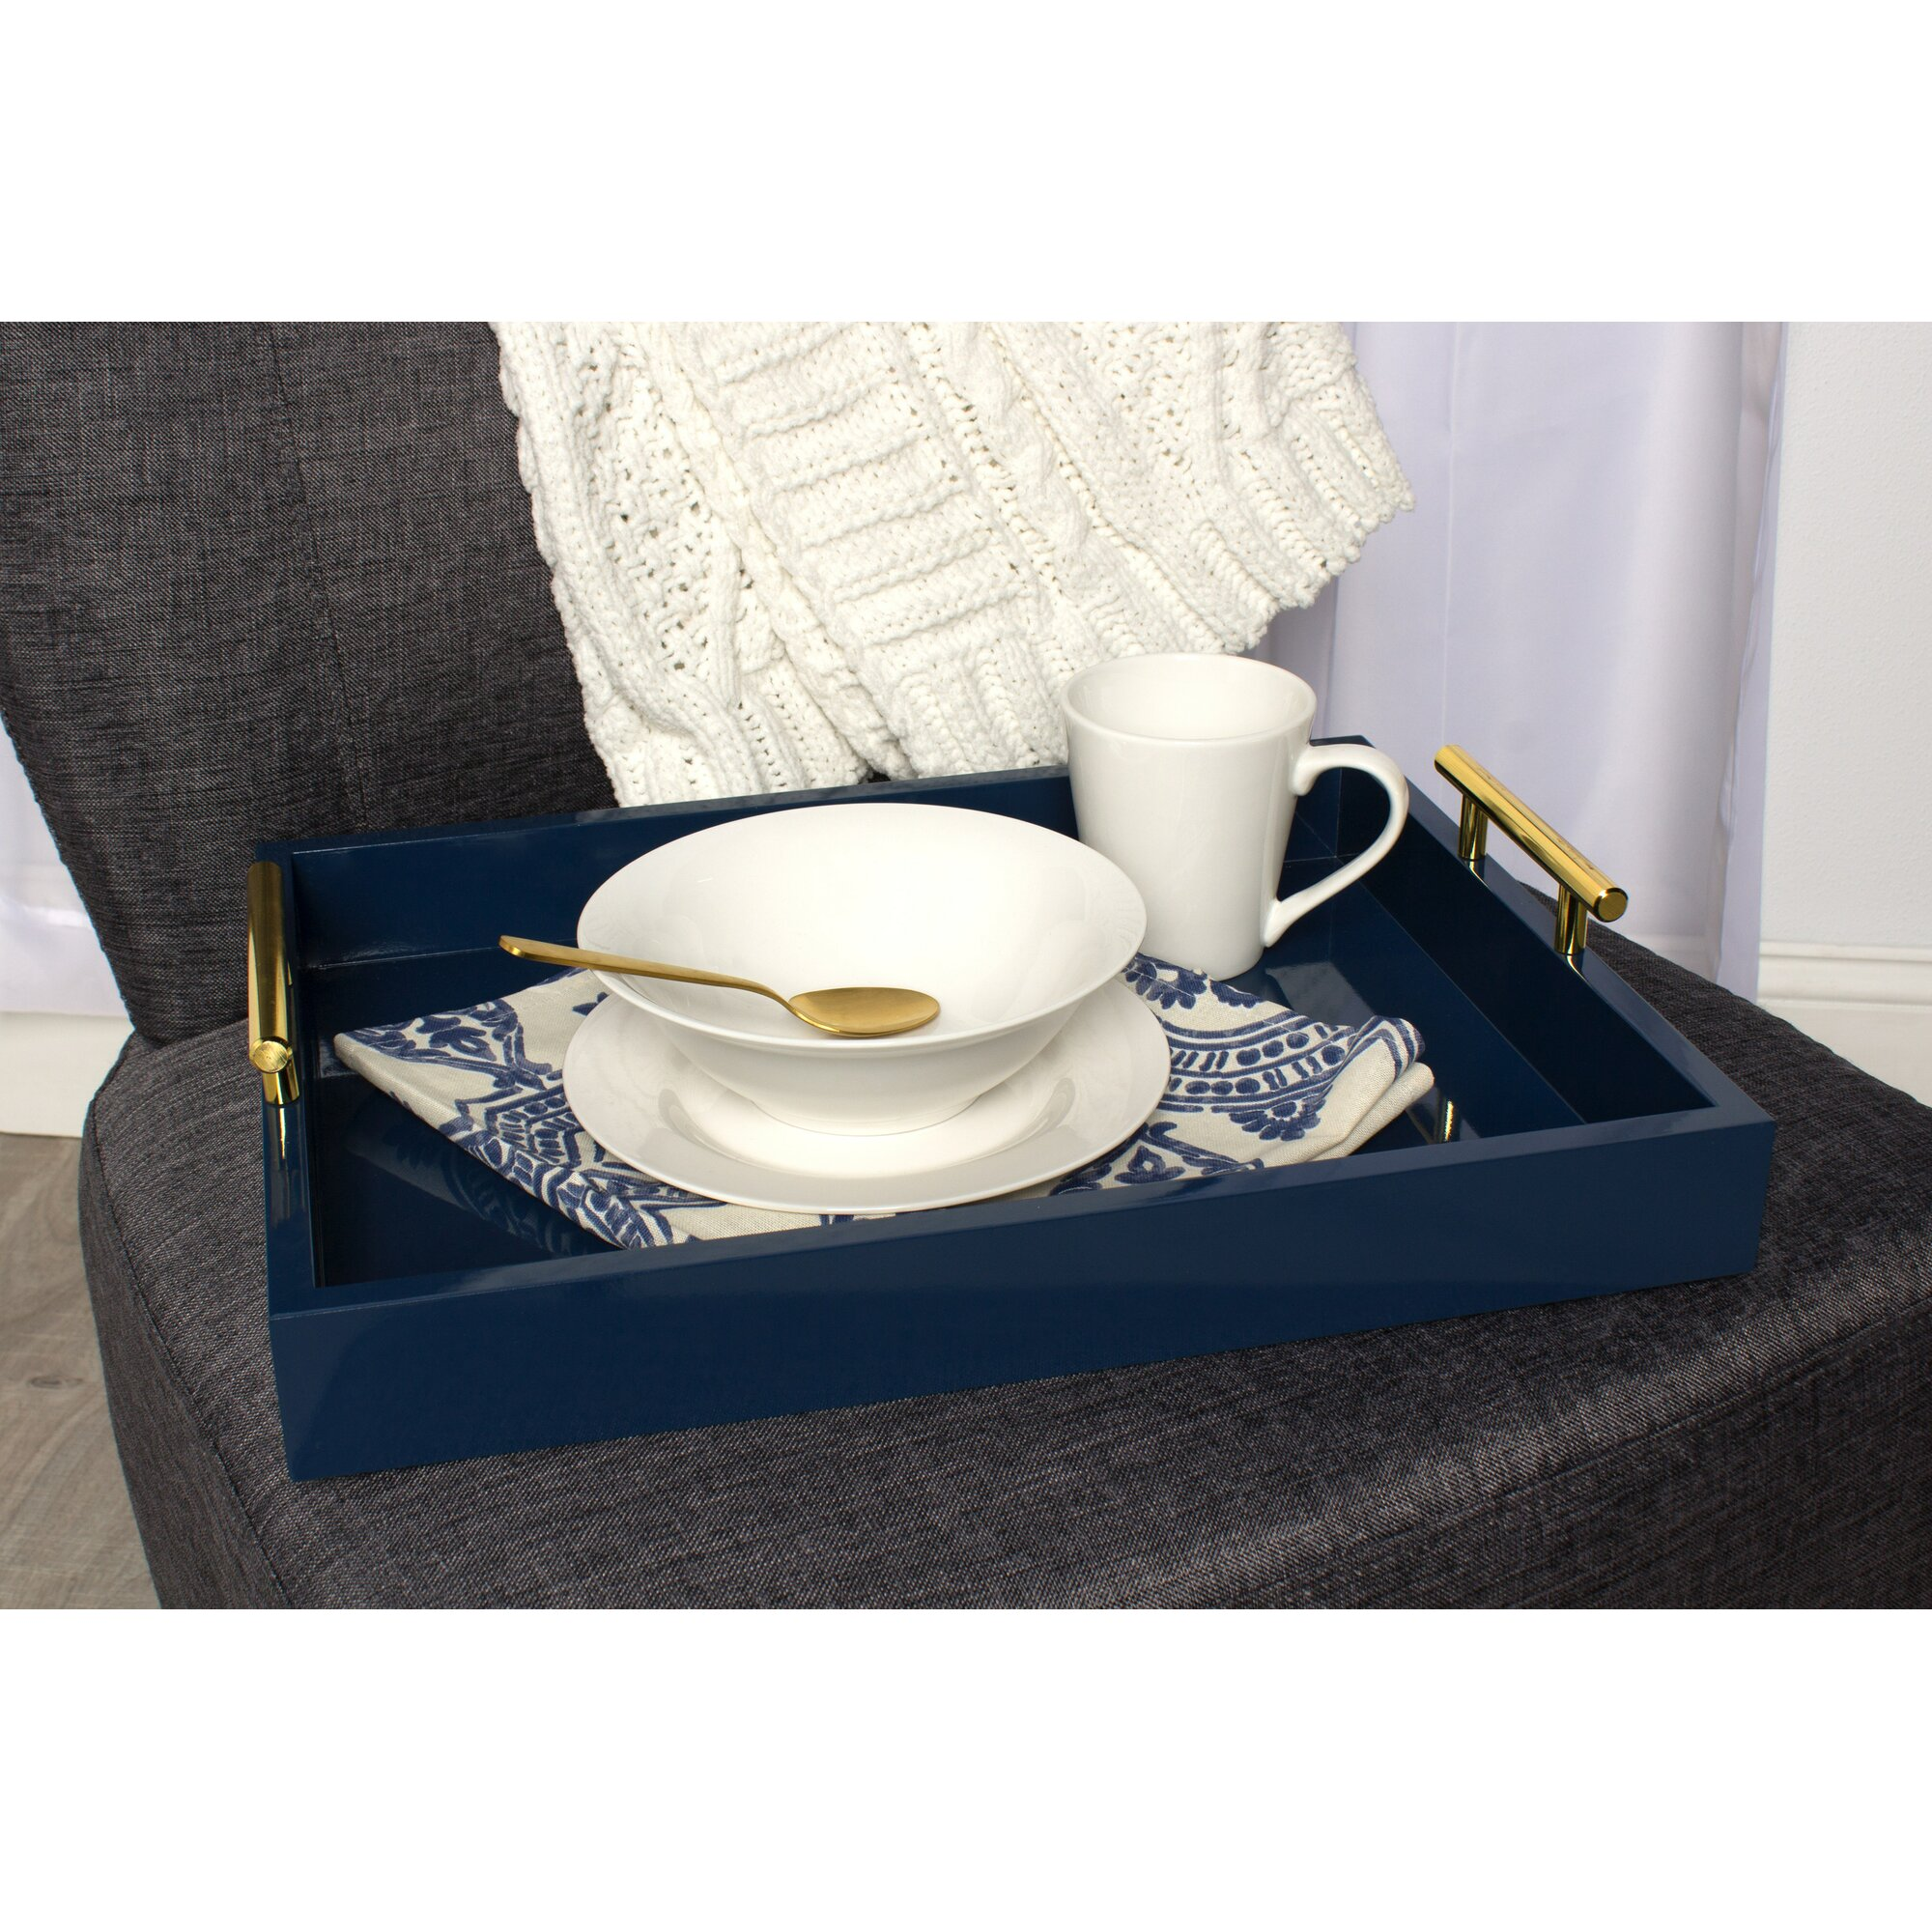 lipton decorative serving tray with polished metal handles - Decorative Serving Trays